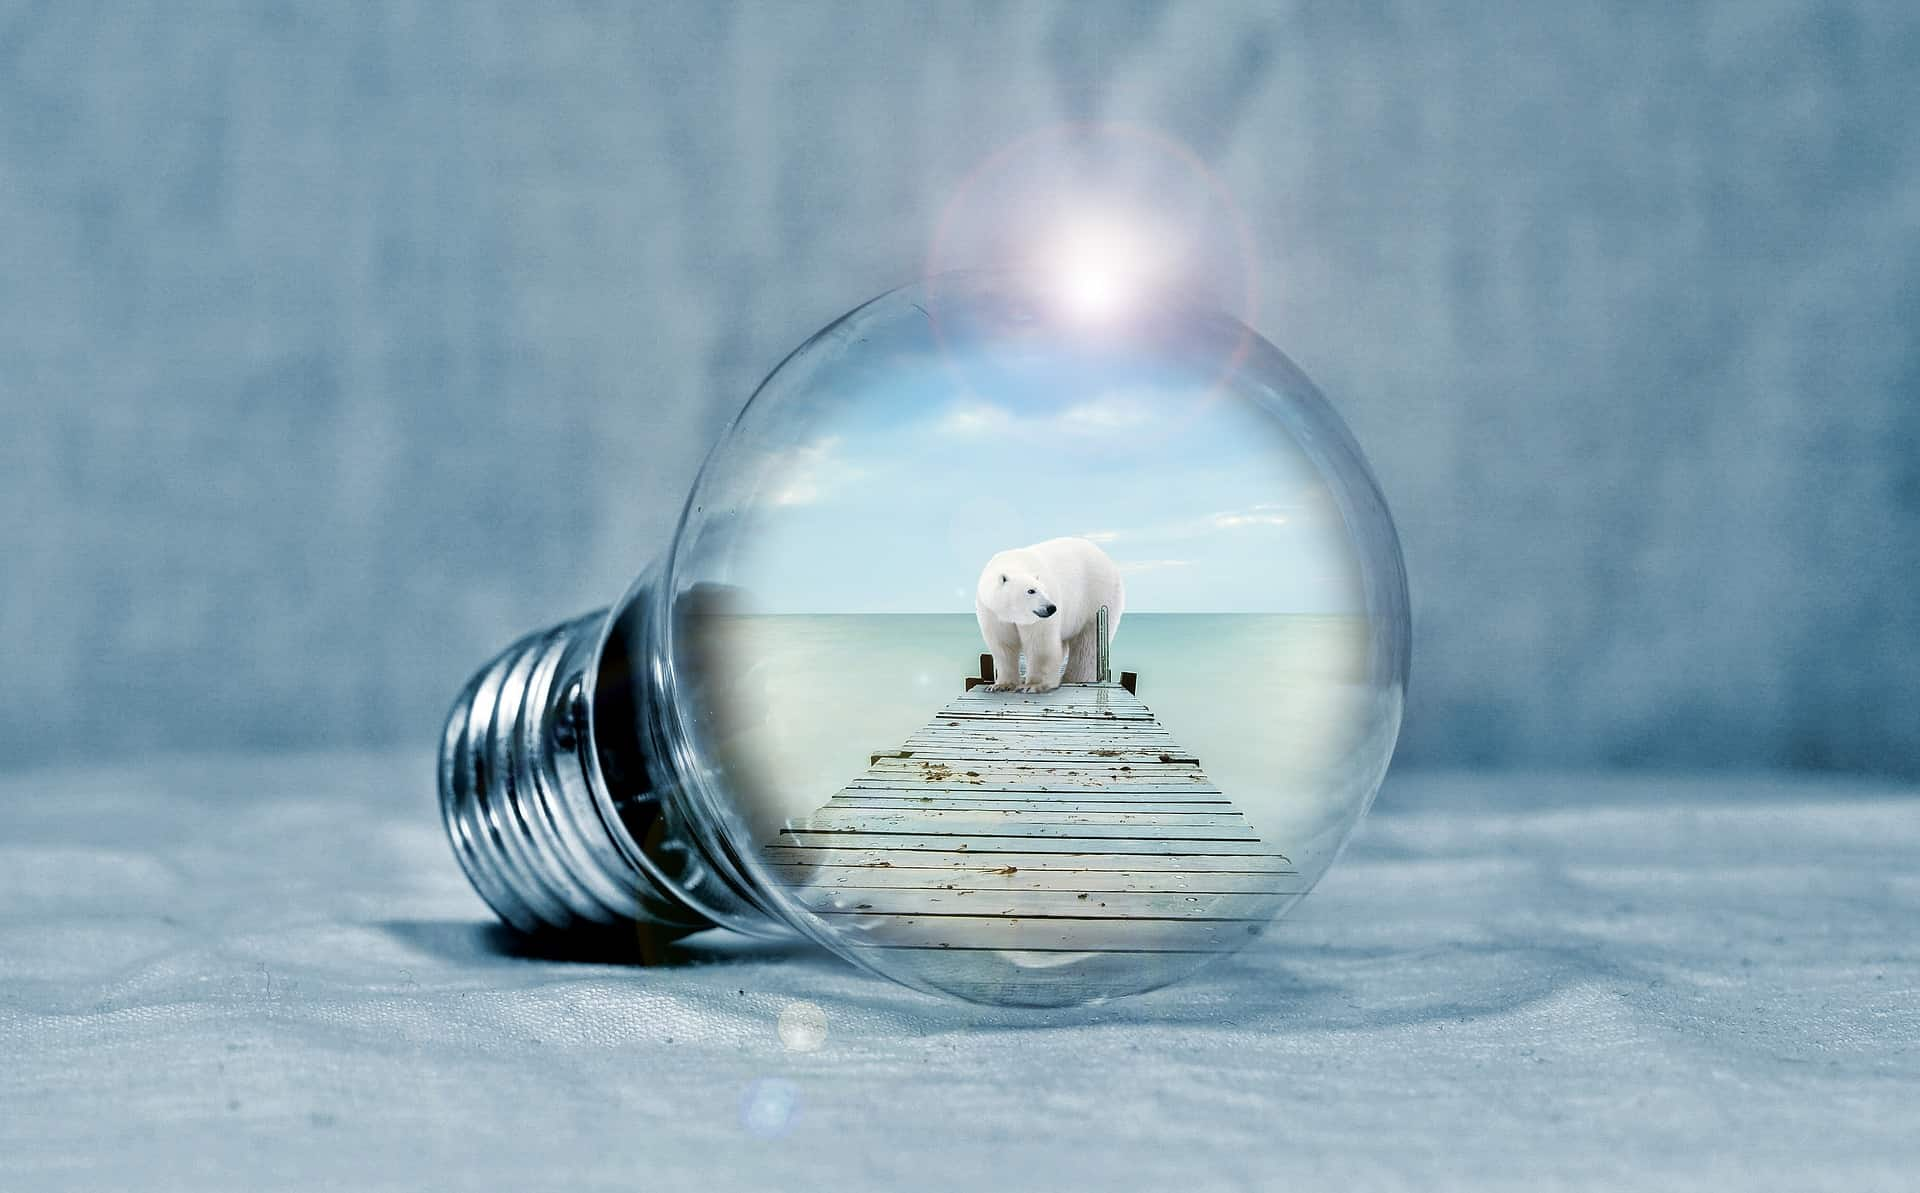 shining bulb  on ice